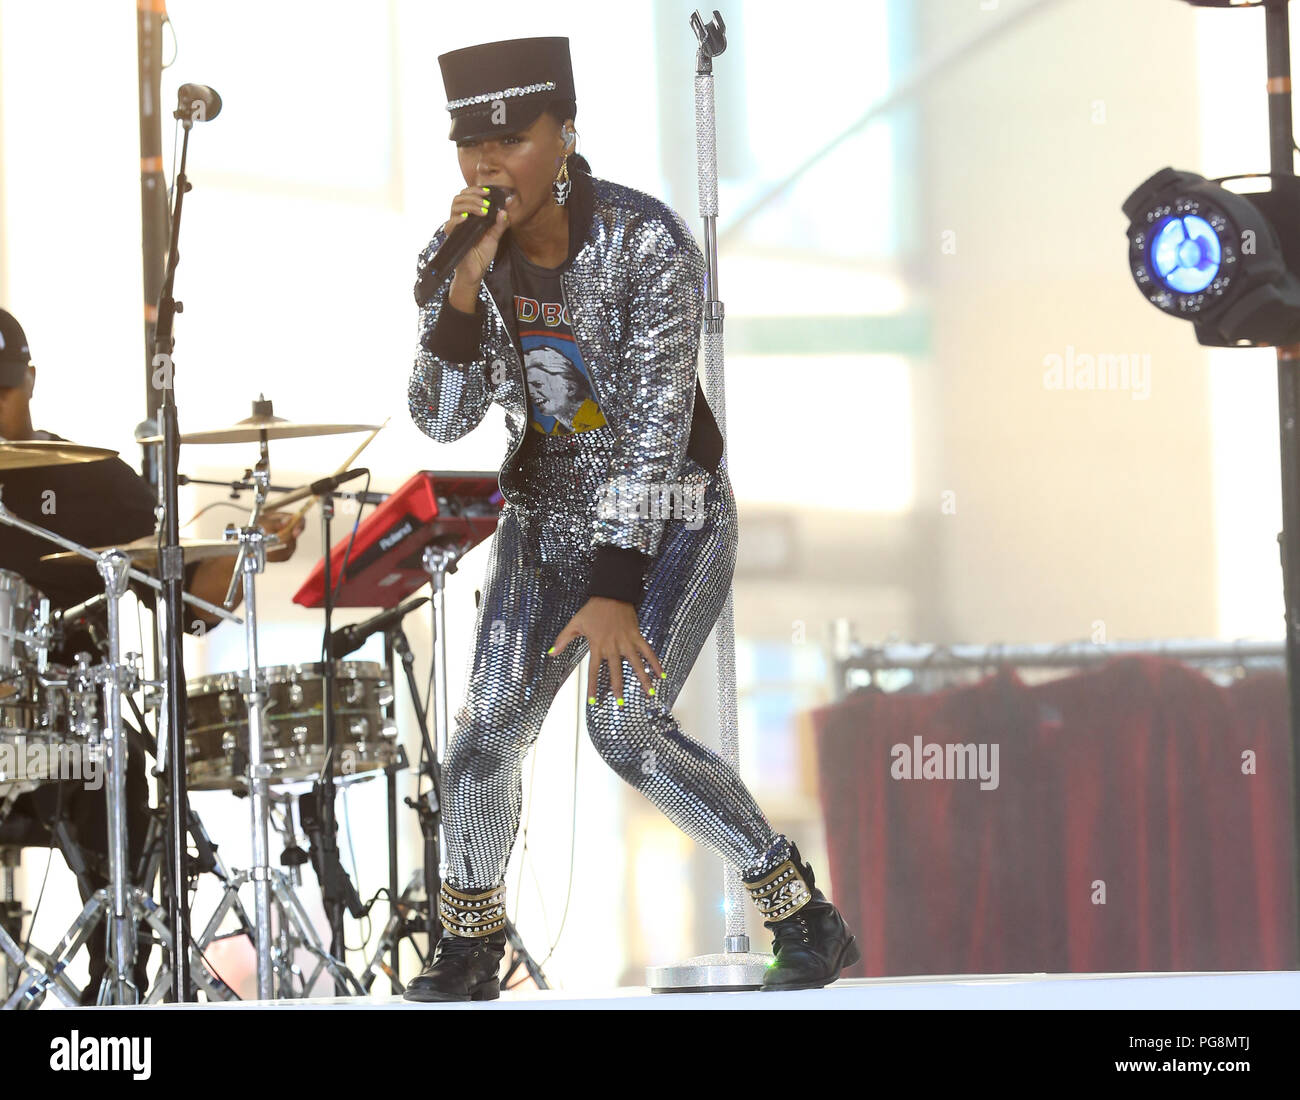 New York, USA. 24th Aug 2018. Janelle Monae performs on NBC's Today Show as part of the Citi Concert Series on August 24th, 2018 in New York City Credit: MPA/Alamy Live News Stock Photo